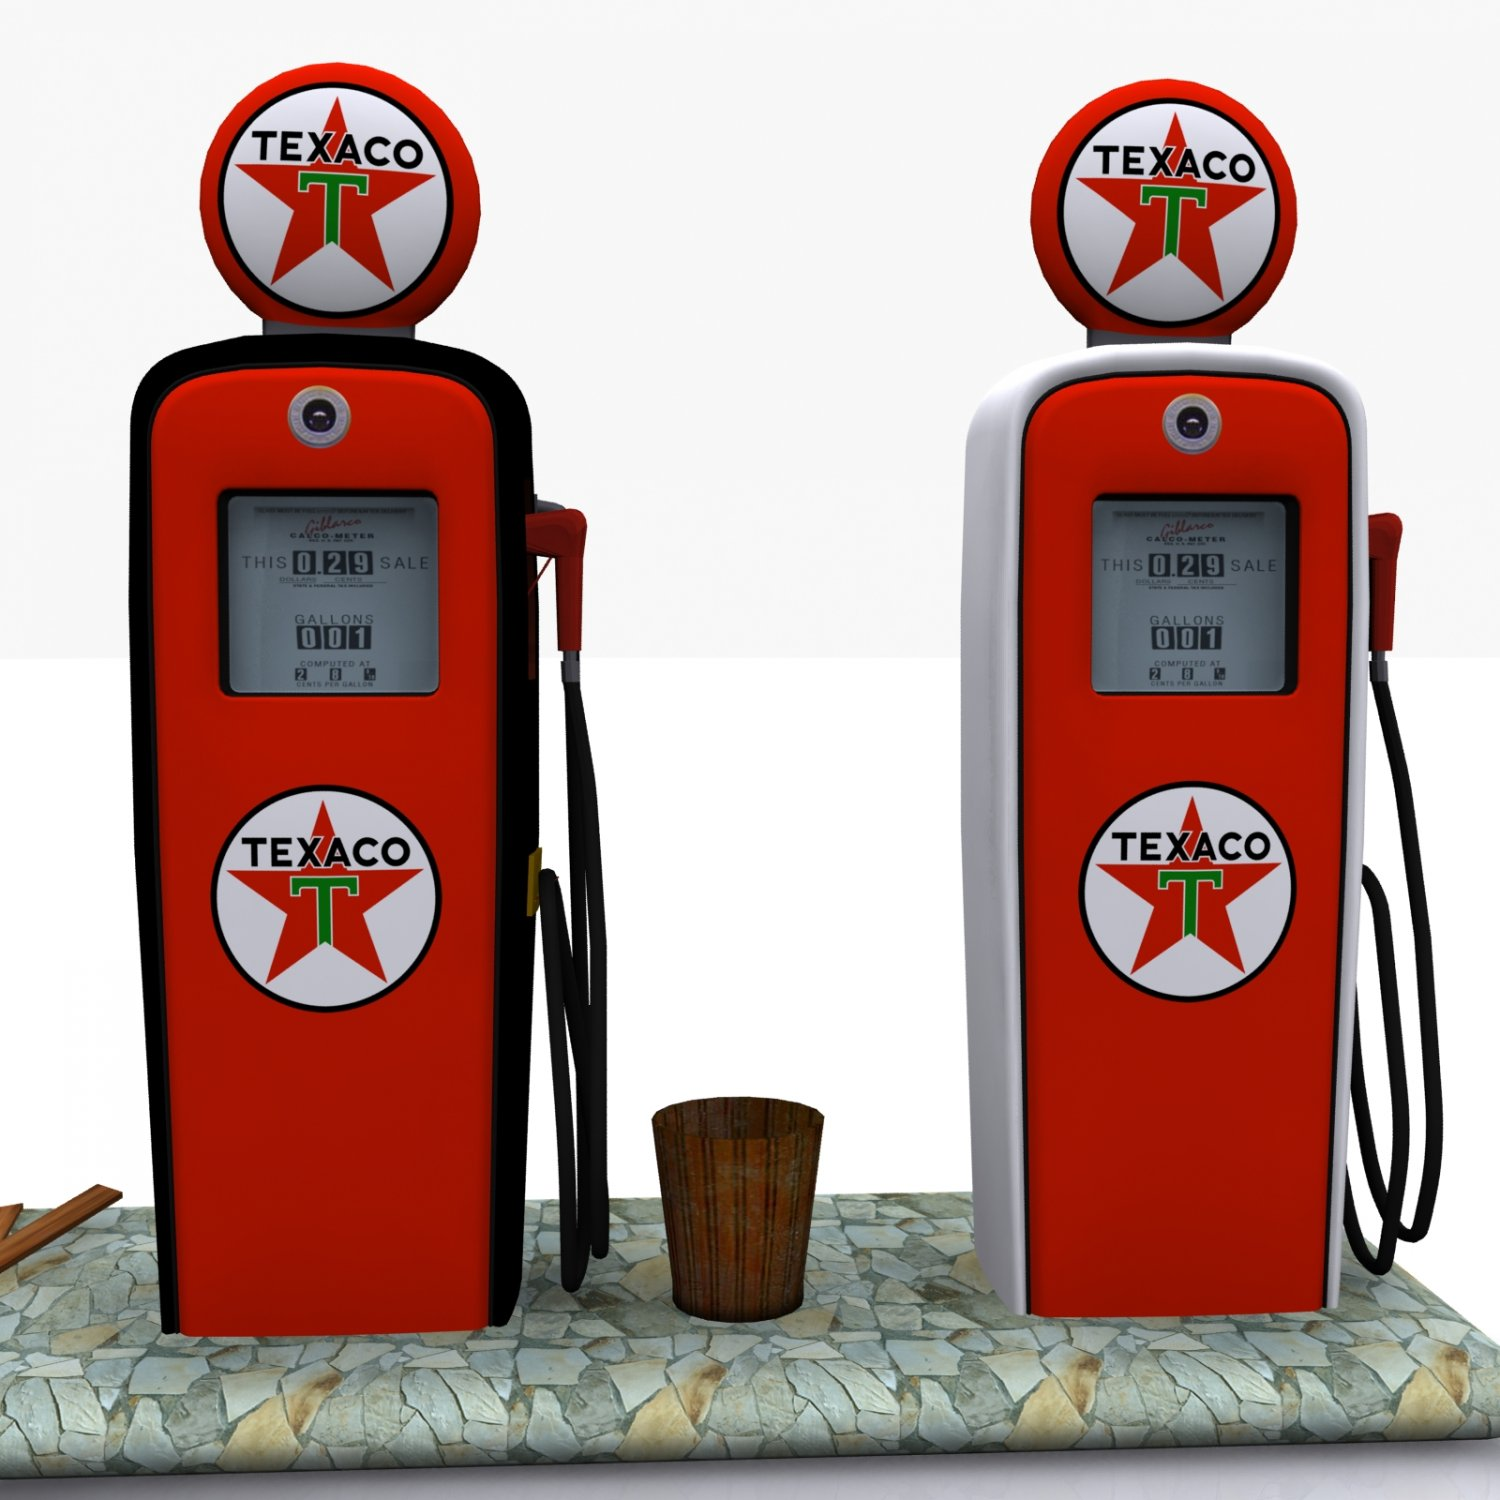 How the Practice of Pricing Fuel with 910th of a Penny